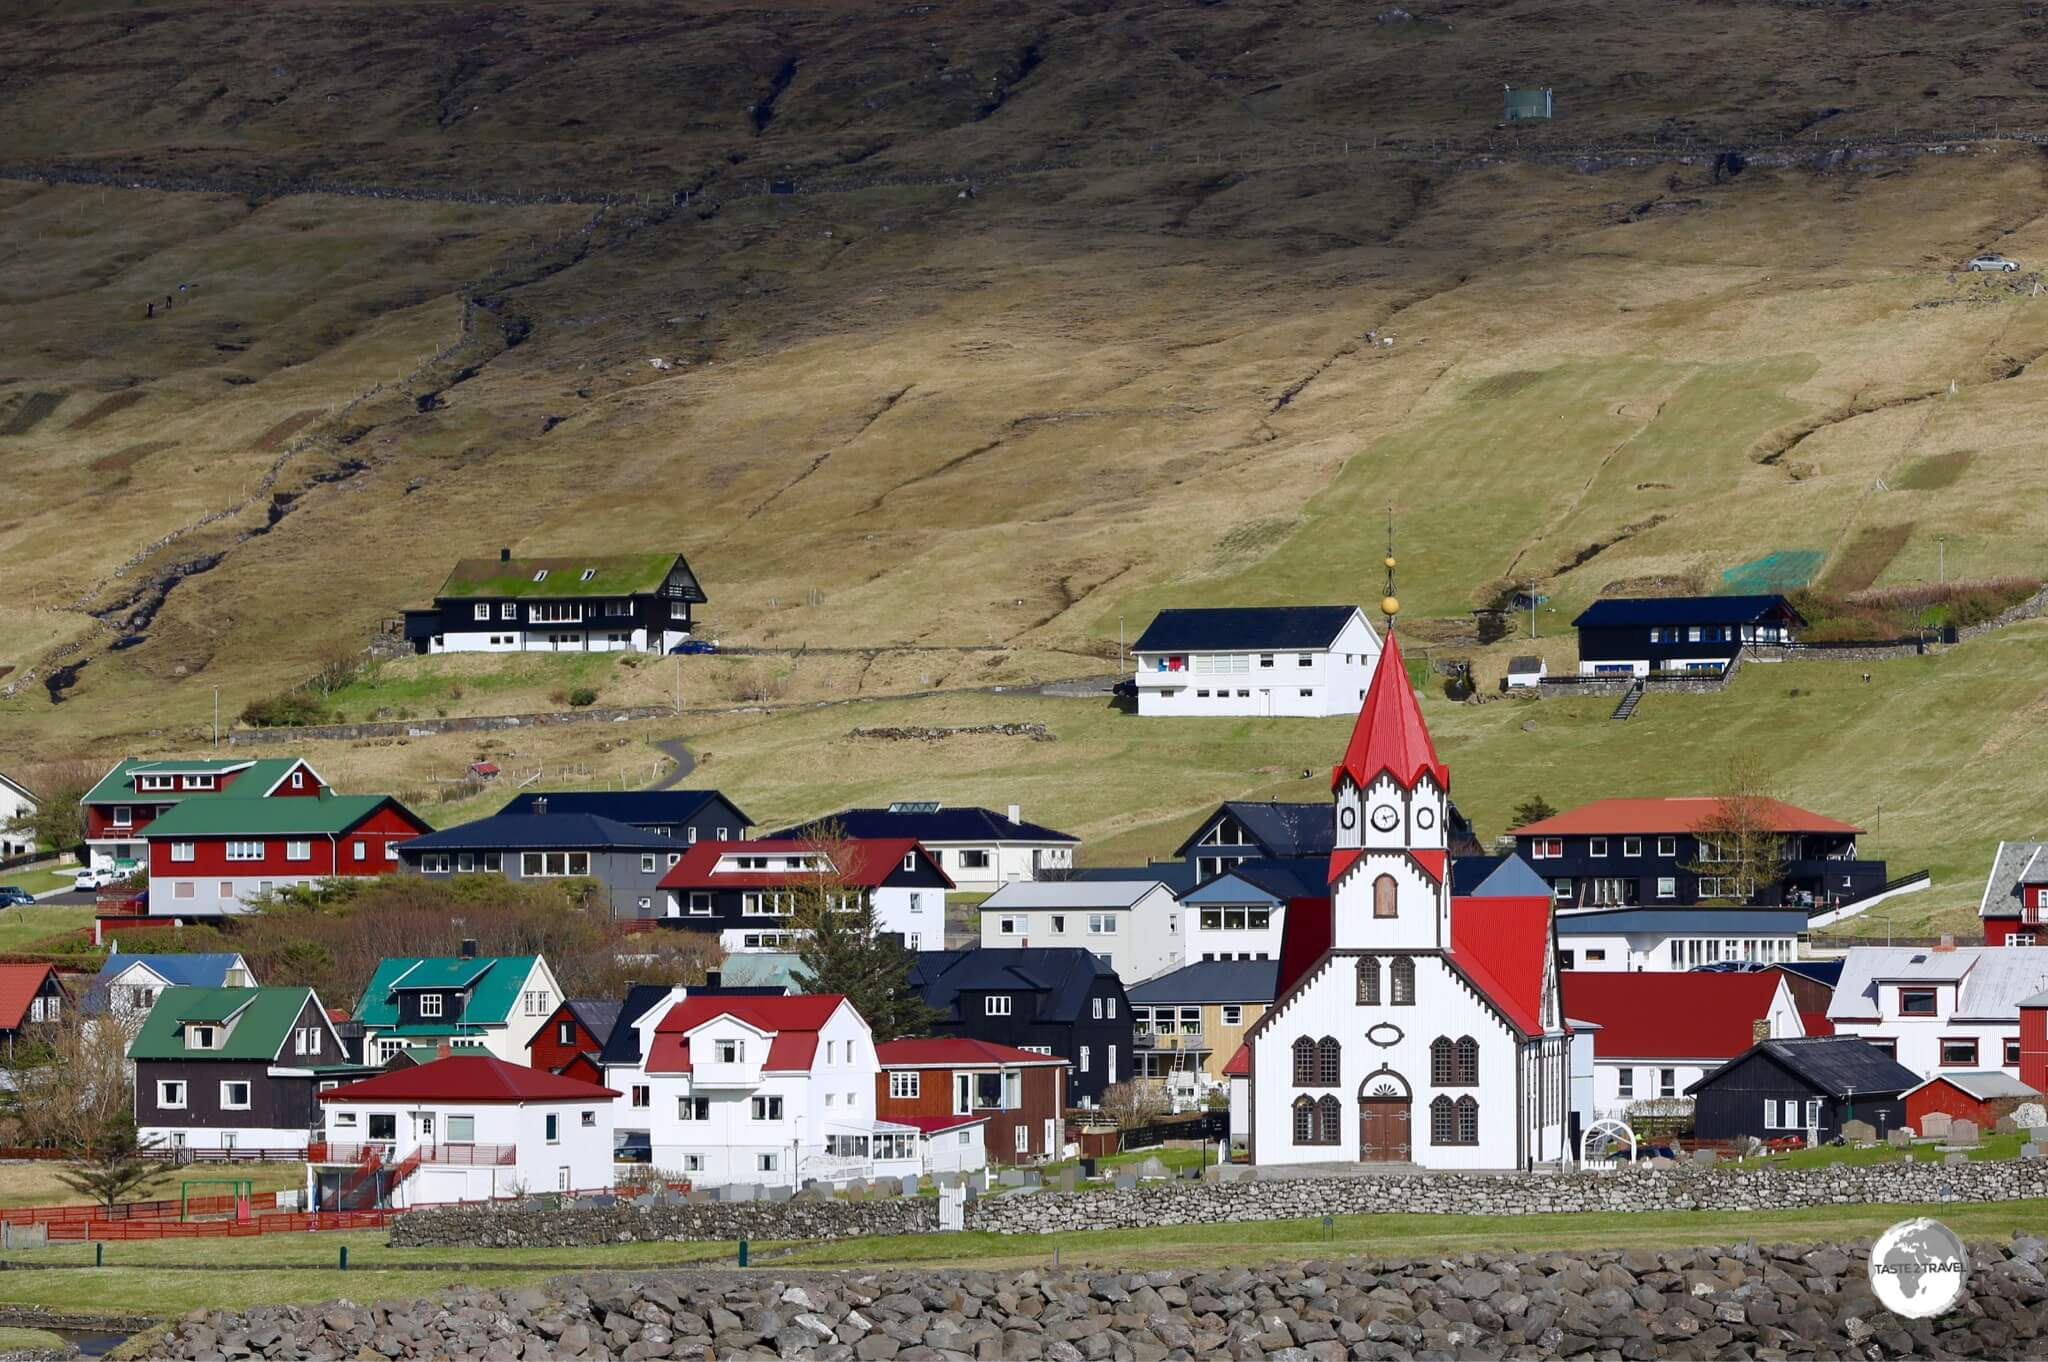 The village of Sandavágur has been voted the most well-kept village in the Faroes twice.